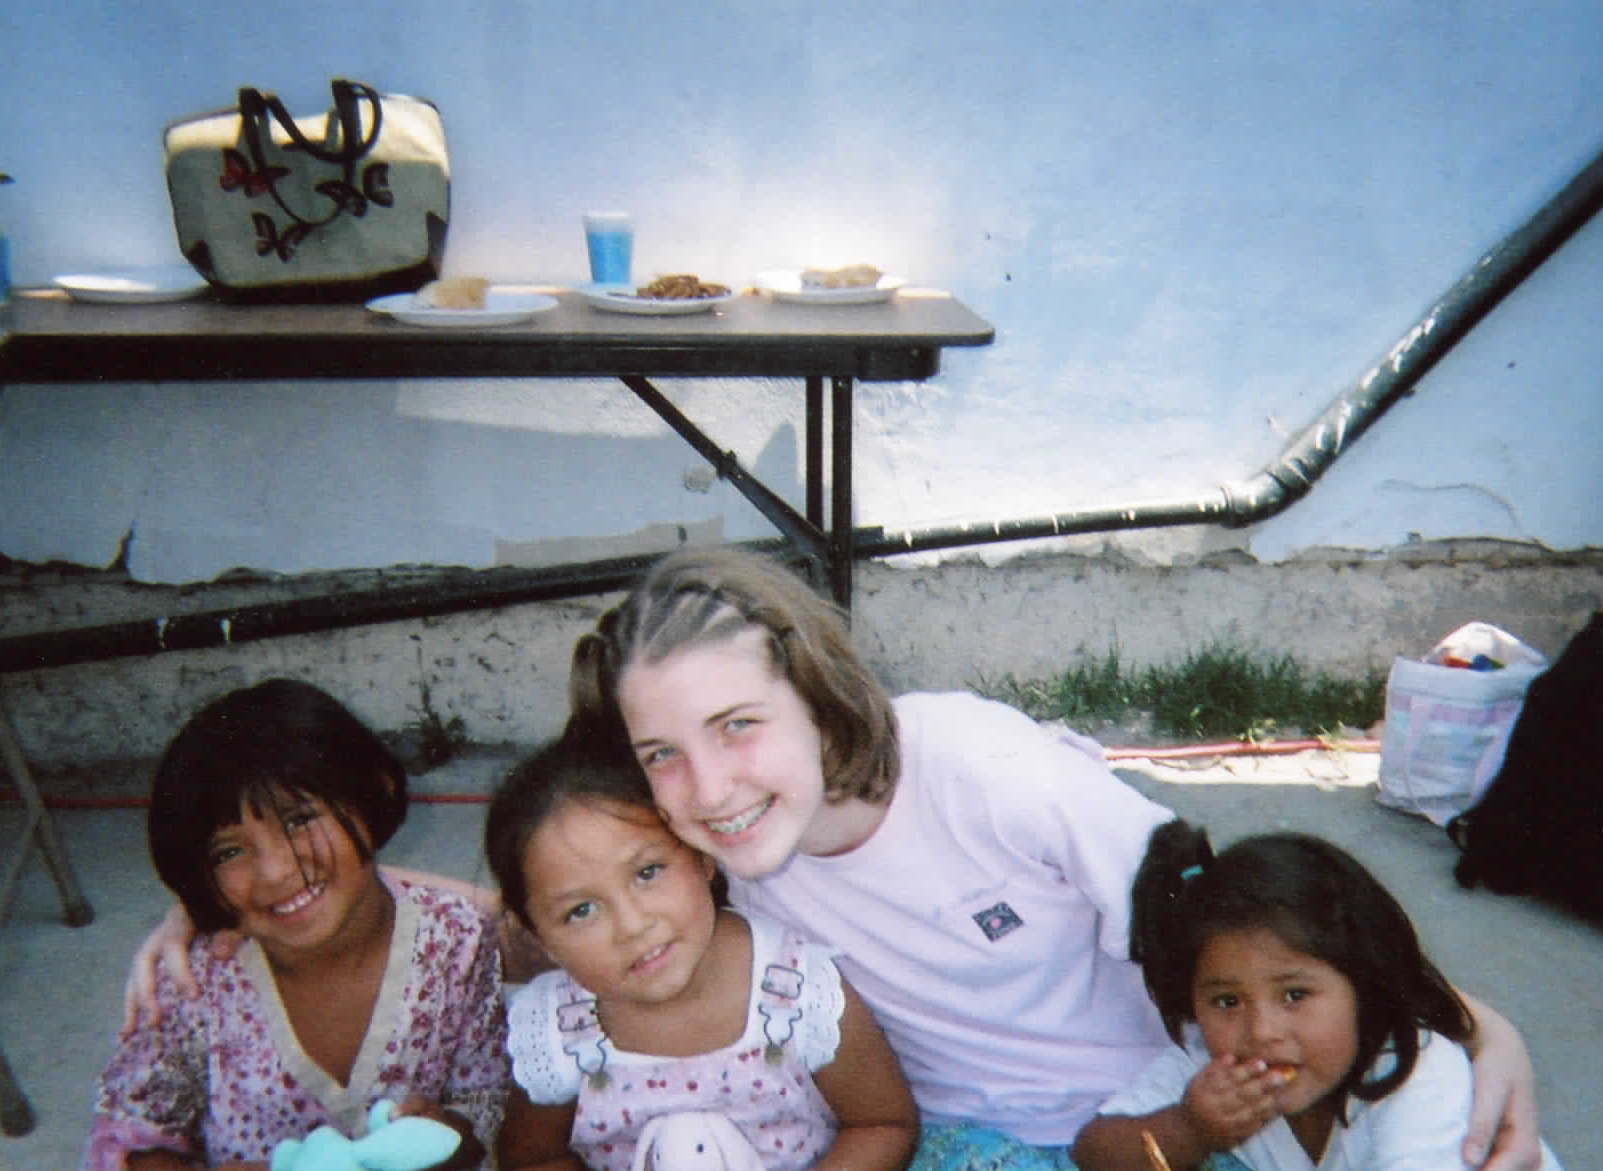 I returned to Mexico every summer during my middle and high school years. Tijuana will always hold a special place in my heart as it marks the beginning of a lifetime of service.